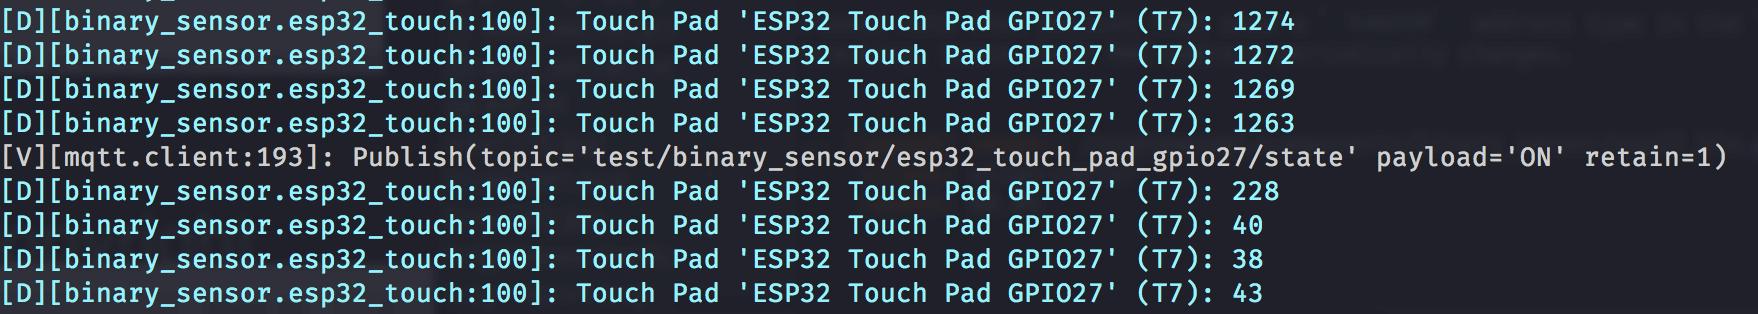 ../../_images/esp32_touch-finding_thresholds.png